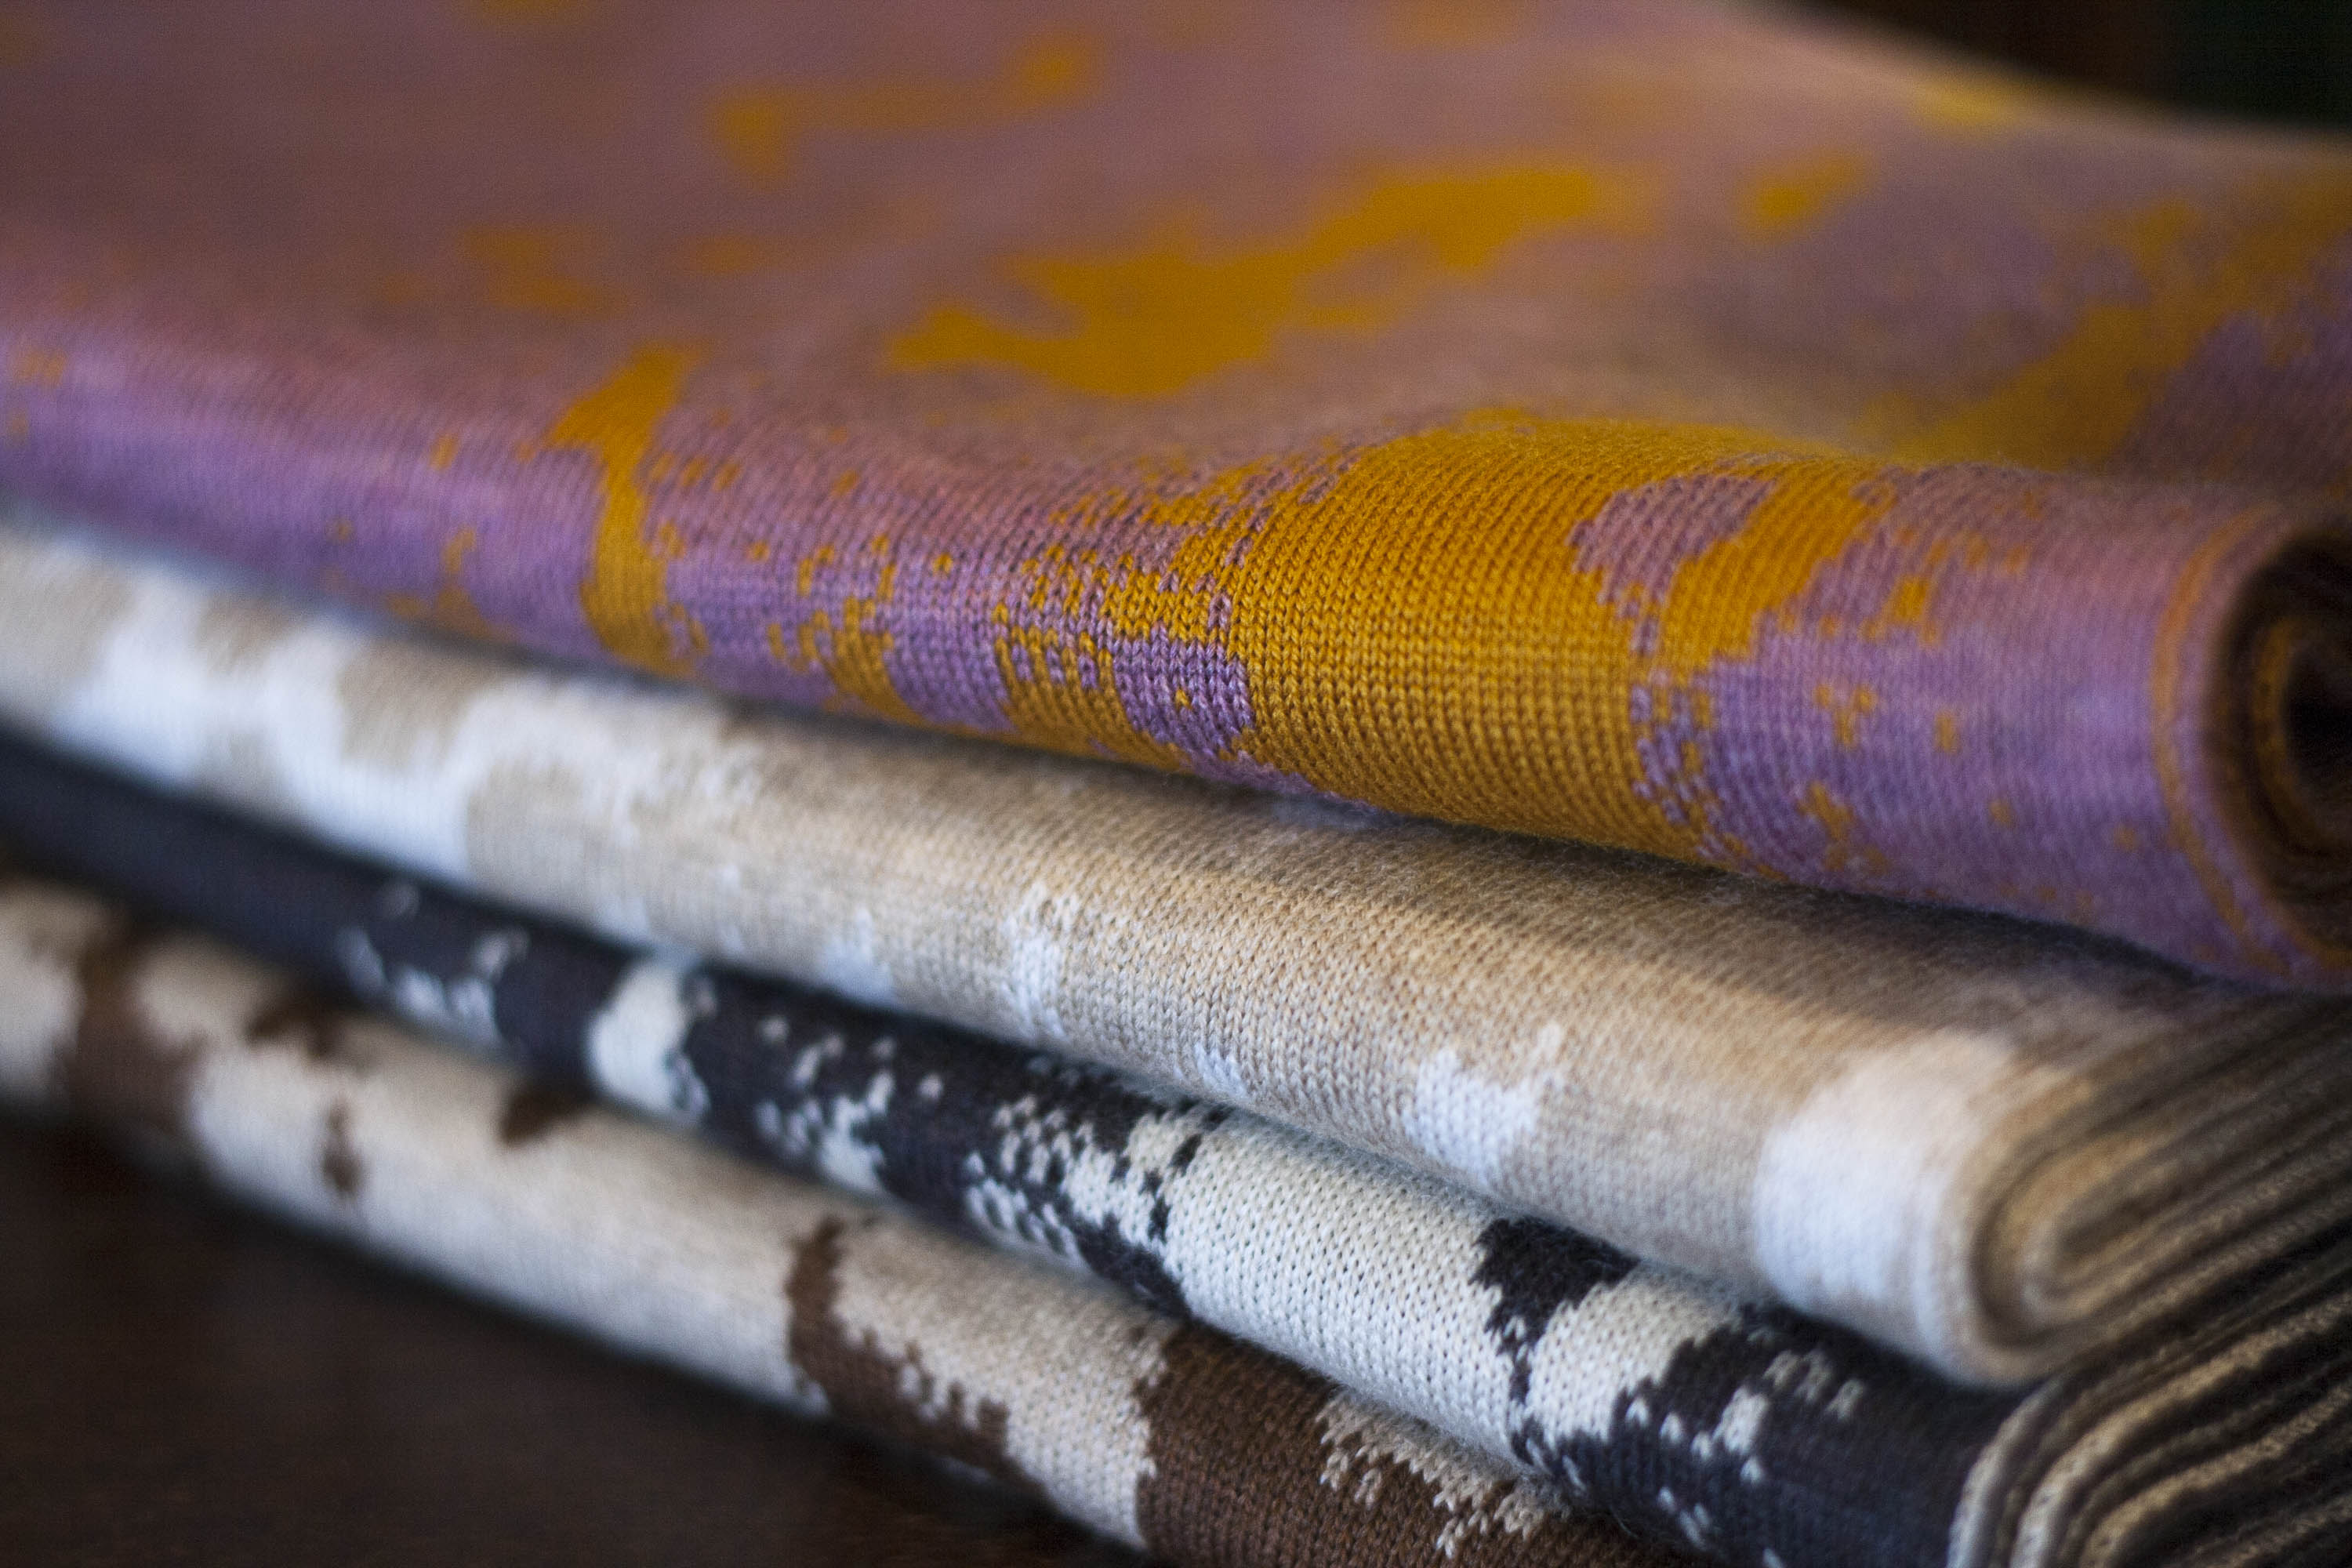 Stack of contemporary Scottish knitwear in extra fine merino wool, these are cowls in an abstract mottled pattern